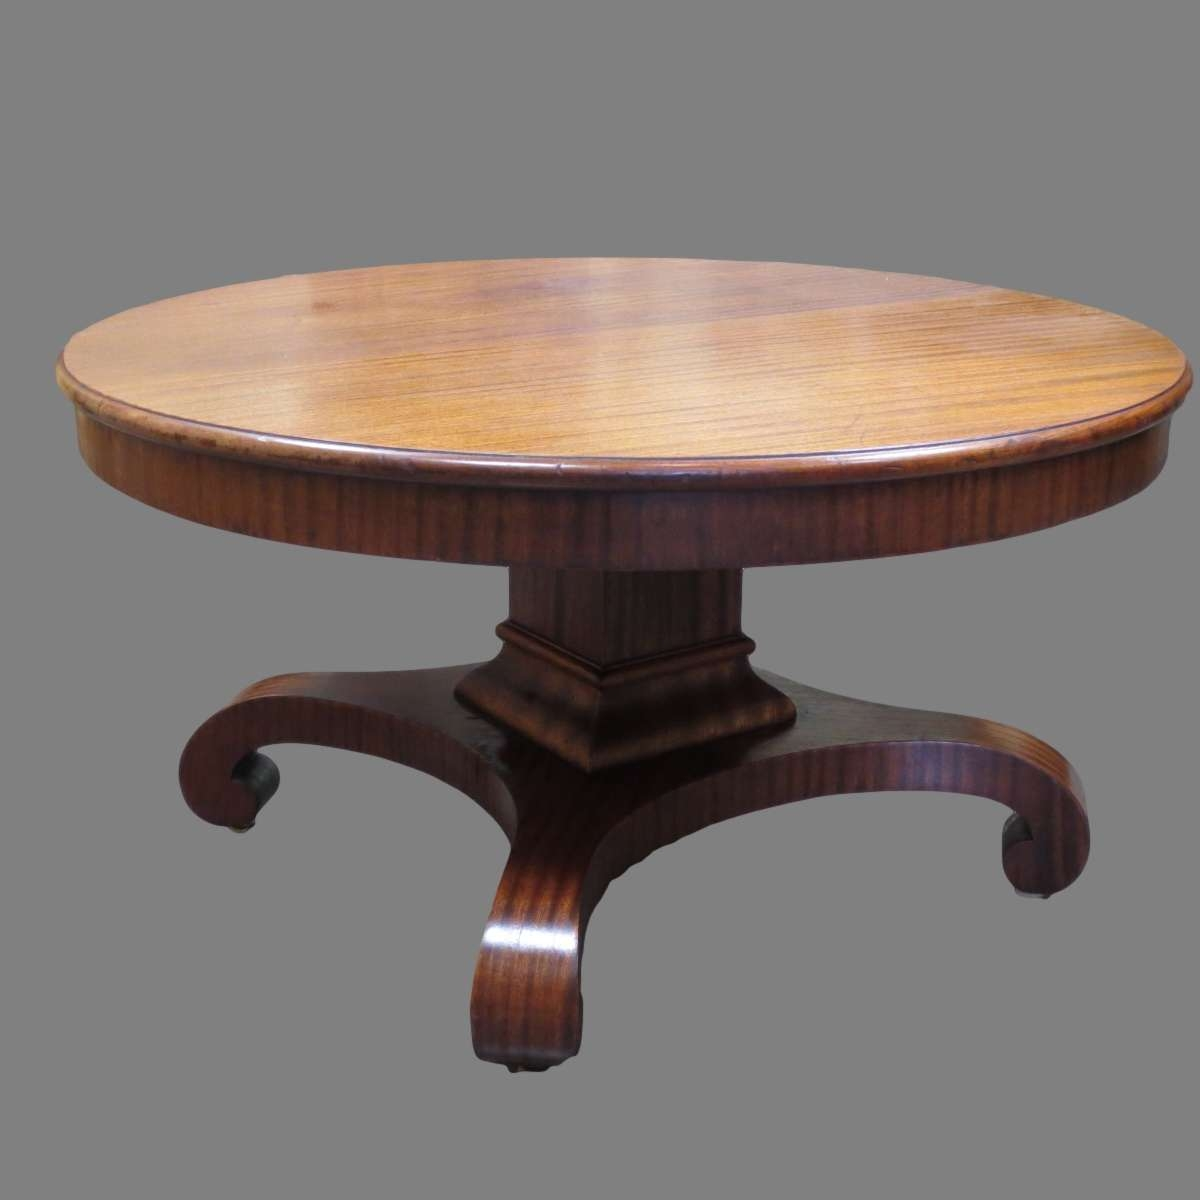 Coffee Tables Ideas: Awesome Antique Round Coffee Table Wood Intended For Current Round Oak Coffee Tables (View 17 of 20)